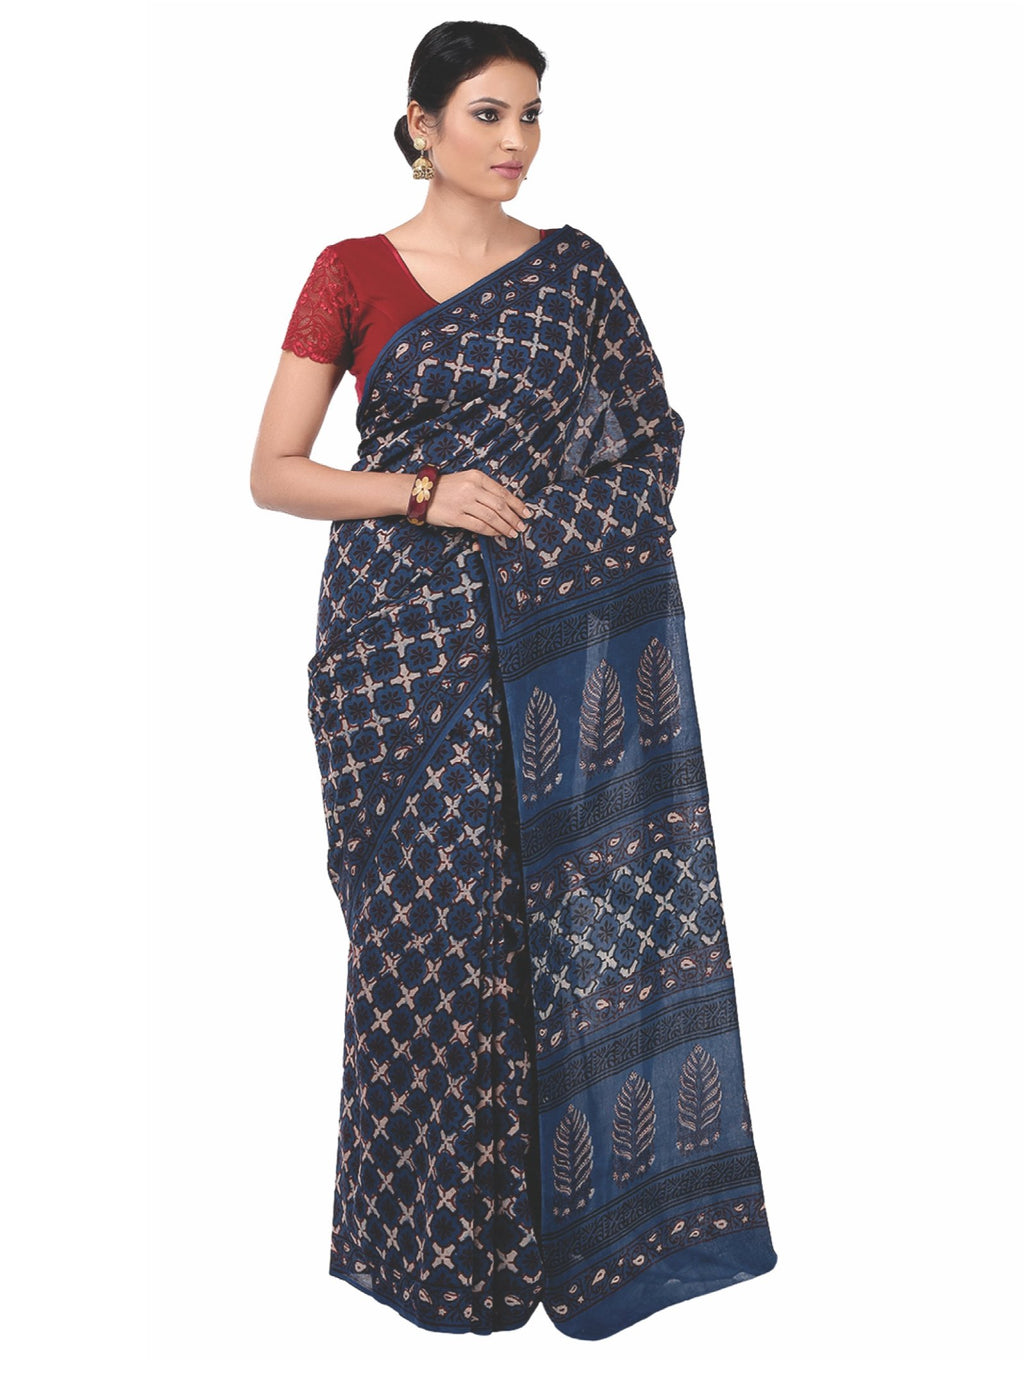 Indigo Tarapur Hand Block Print Handcrafted Cotton Saree-Saree-Kalakari India-BAPASA0028-Cotton, Geographical Indication, Hand Blocks, Hand Crafted, Heritage Prints, Indigo, Natural Dyes, Sarees, Sustainable Fabrics, Tarapur-[Linen,Ethnic,wear,Fashionista,Handloom,Handicraft,Indigo,blockprint,block,print,Cotton,Chanderi,Blue, latest,classy,party,bollywood,trendy,summer,style,traditional,formal,elegant,unique,style,hand,block,print, dabu,booti,gift,present,glamorous,affordable,collectible,Sari,Sa